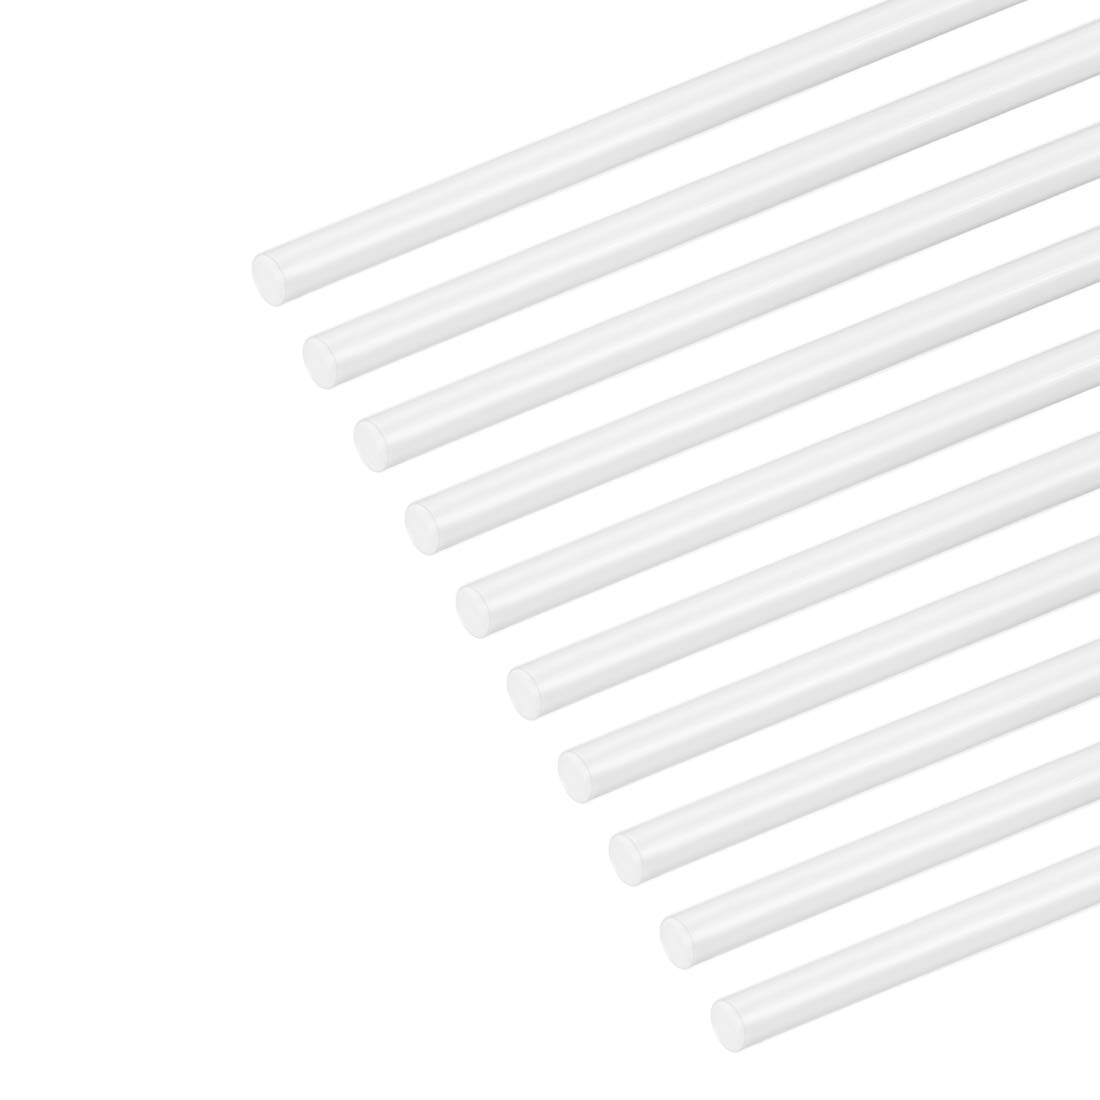 sourcing map 1mm /× 20 ABS Plastic Round Bar Rod for Architectural Model Making DIY White 4pcs